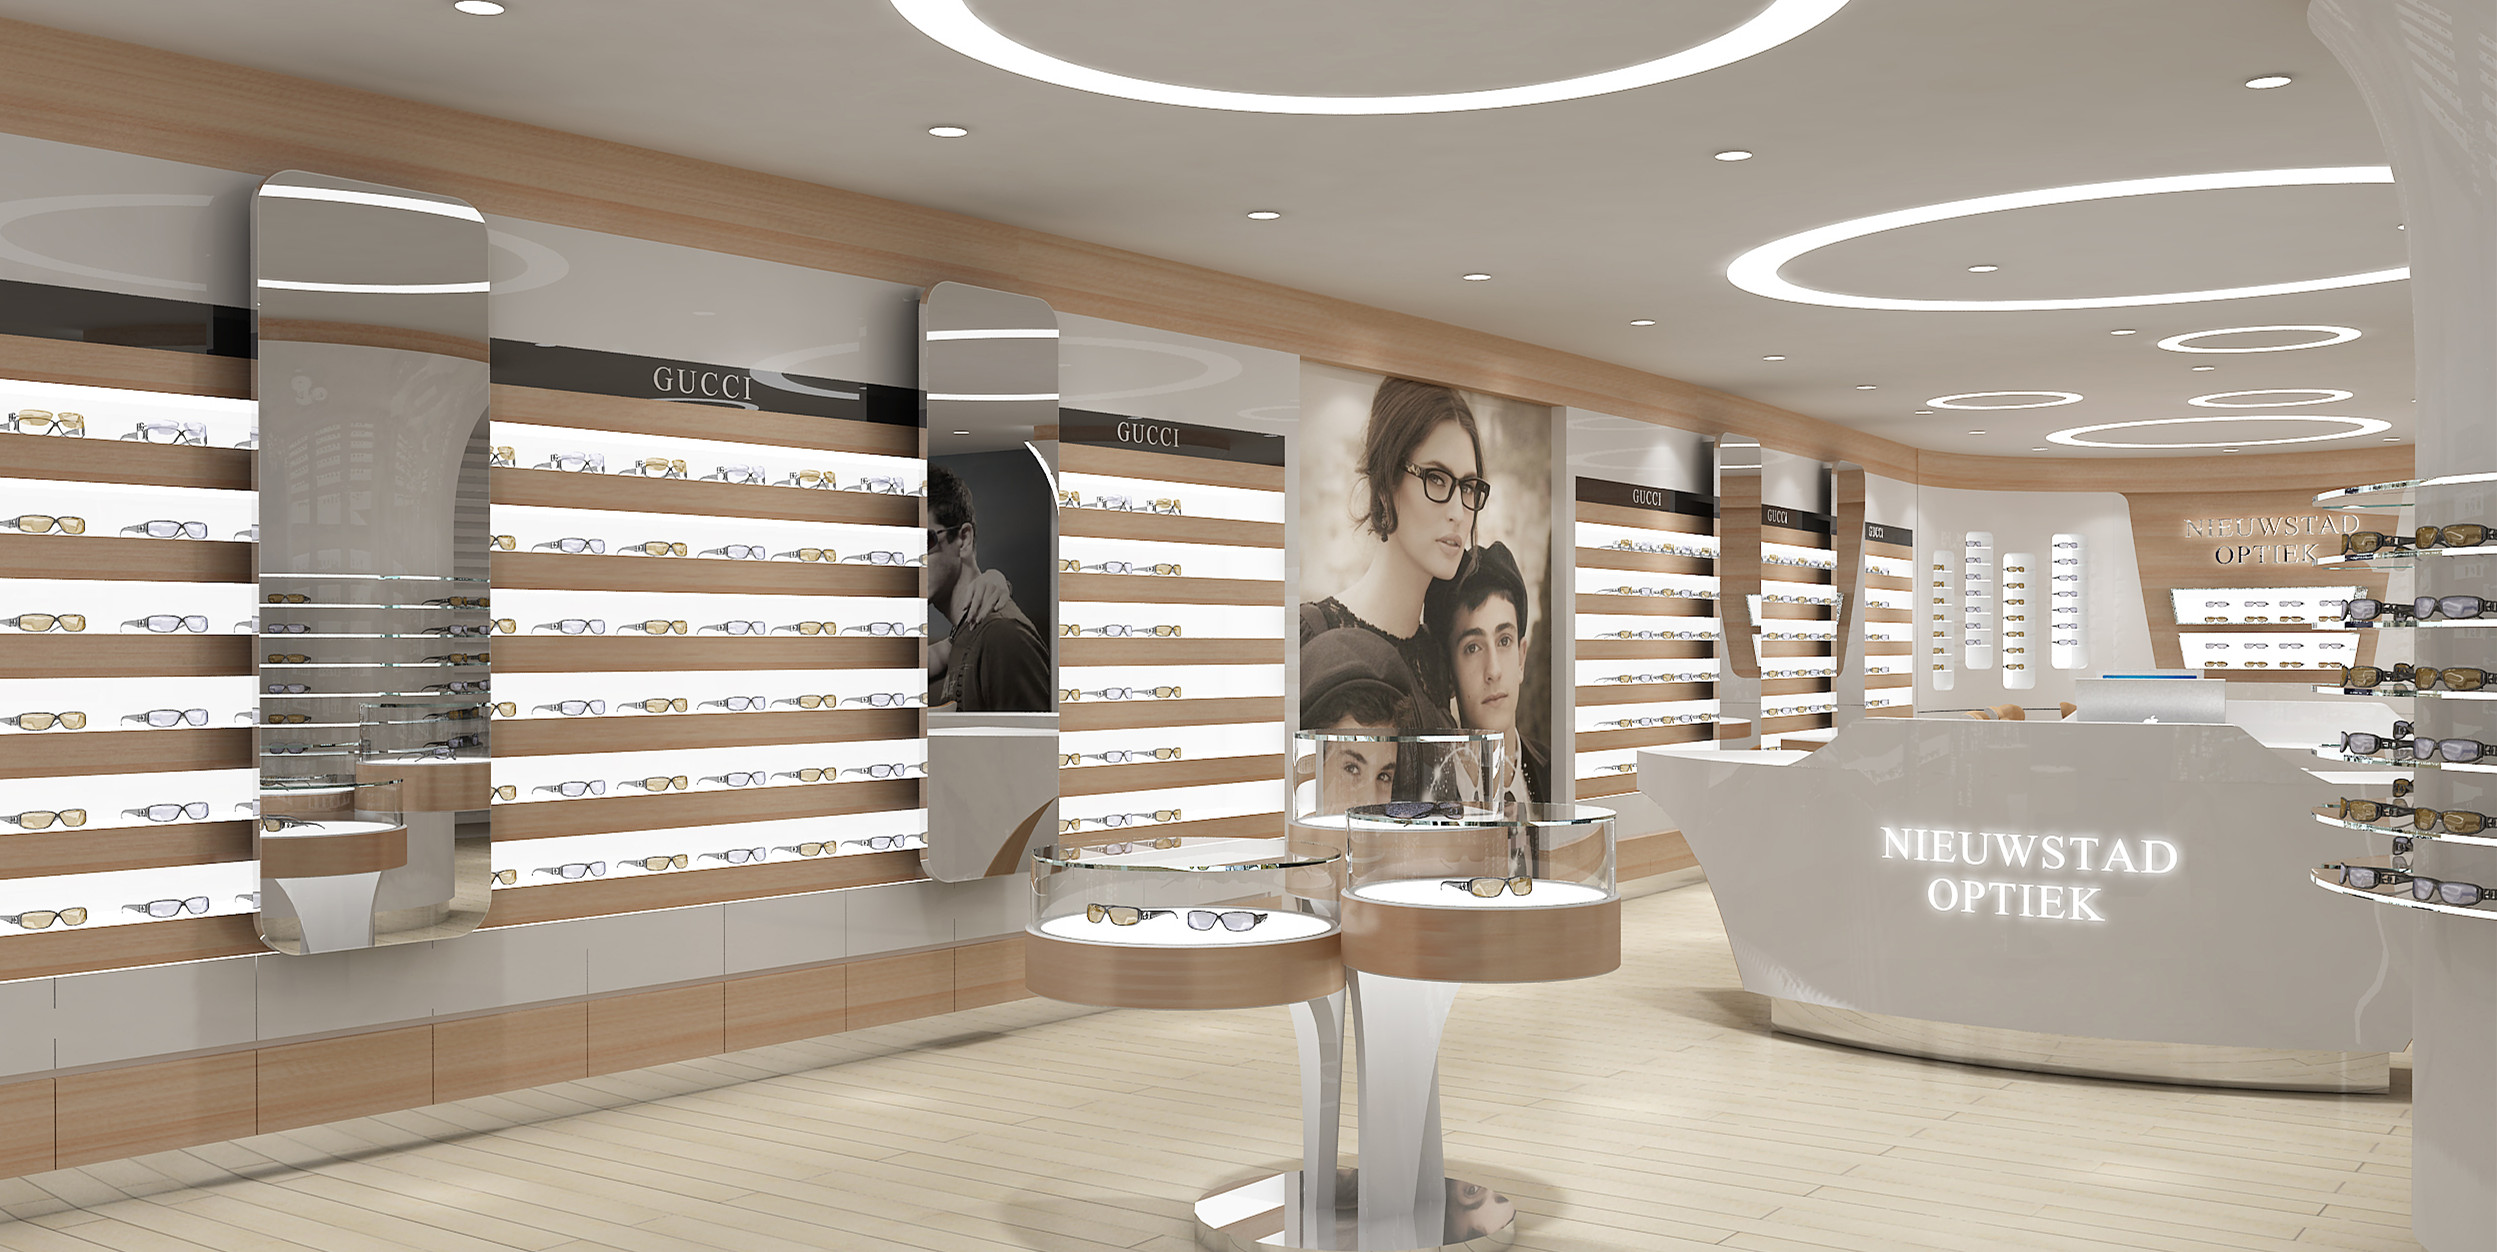 Retail Eyewear Store Eyeglasses Boutique Store Fixture Optical Shop Interior Design, High Quality Retail Eyewear Store Interior Design,Interior Eyeglasses Shop Design,Eyewear Store Interior Design